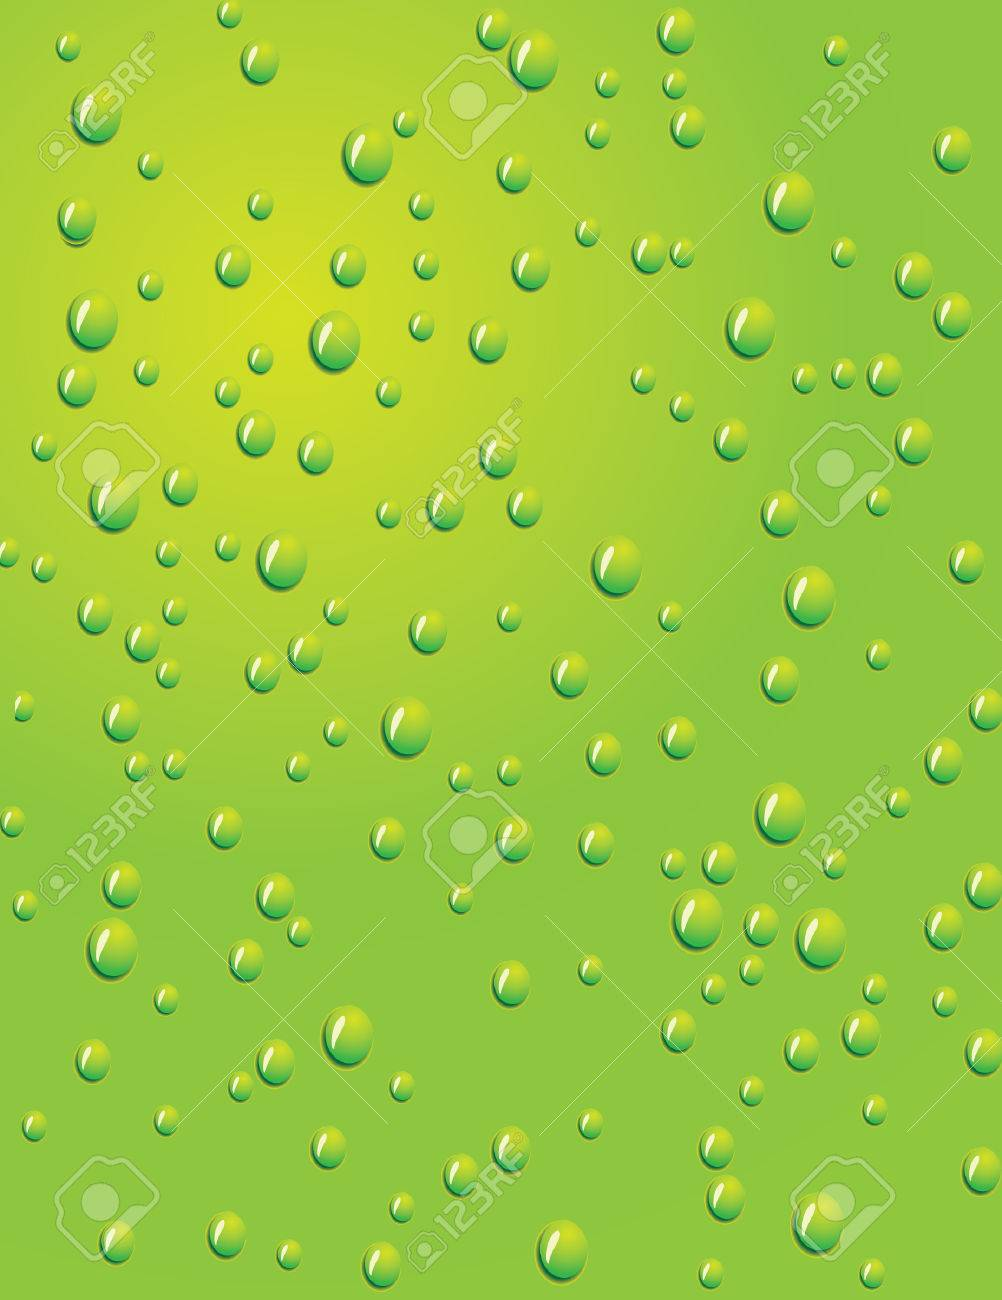 Seamless green background with water drops. Vector illustration Stock Vector - 5399587